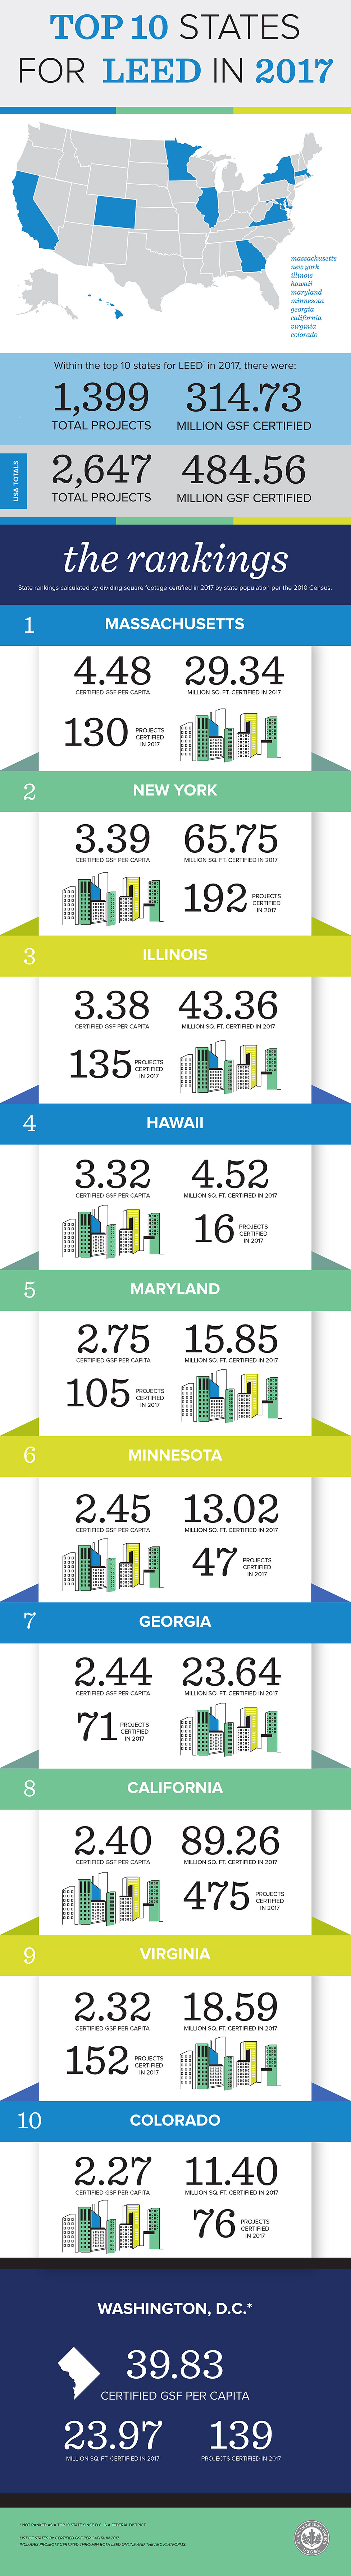 Top 10 States for LEED infographic